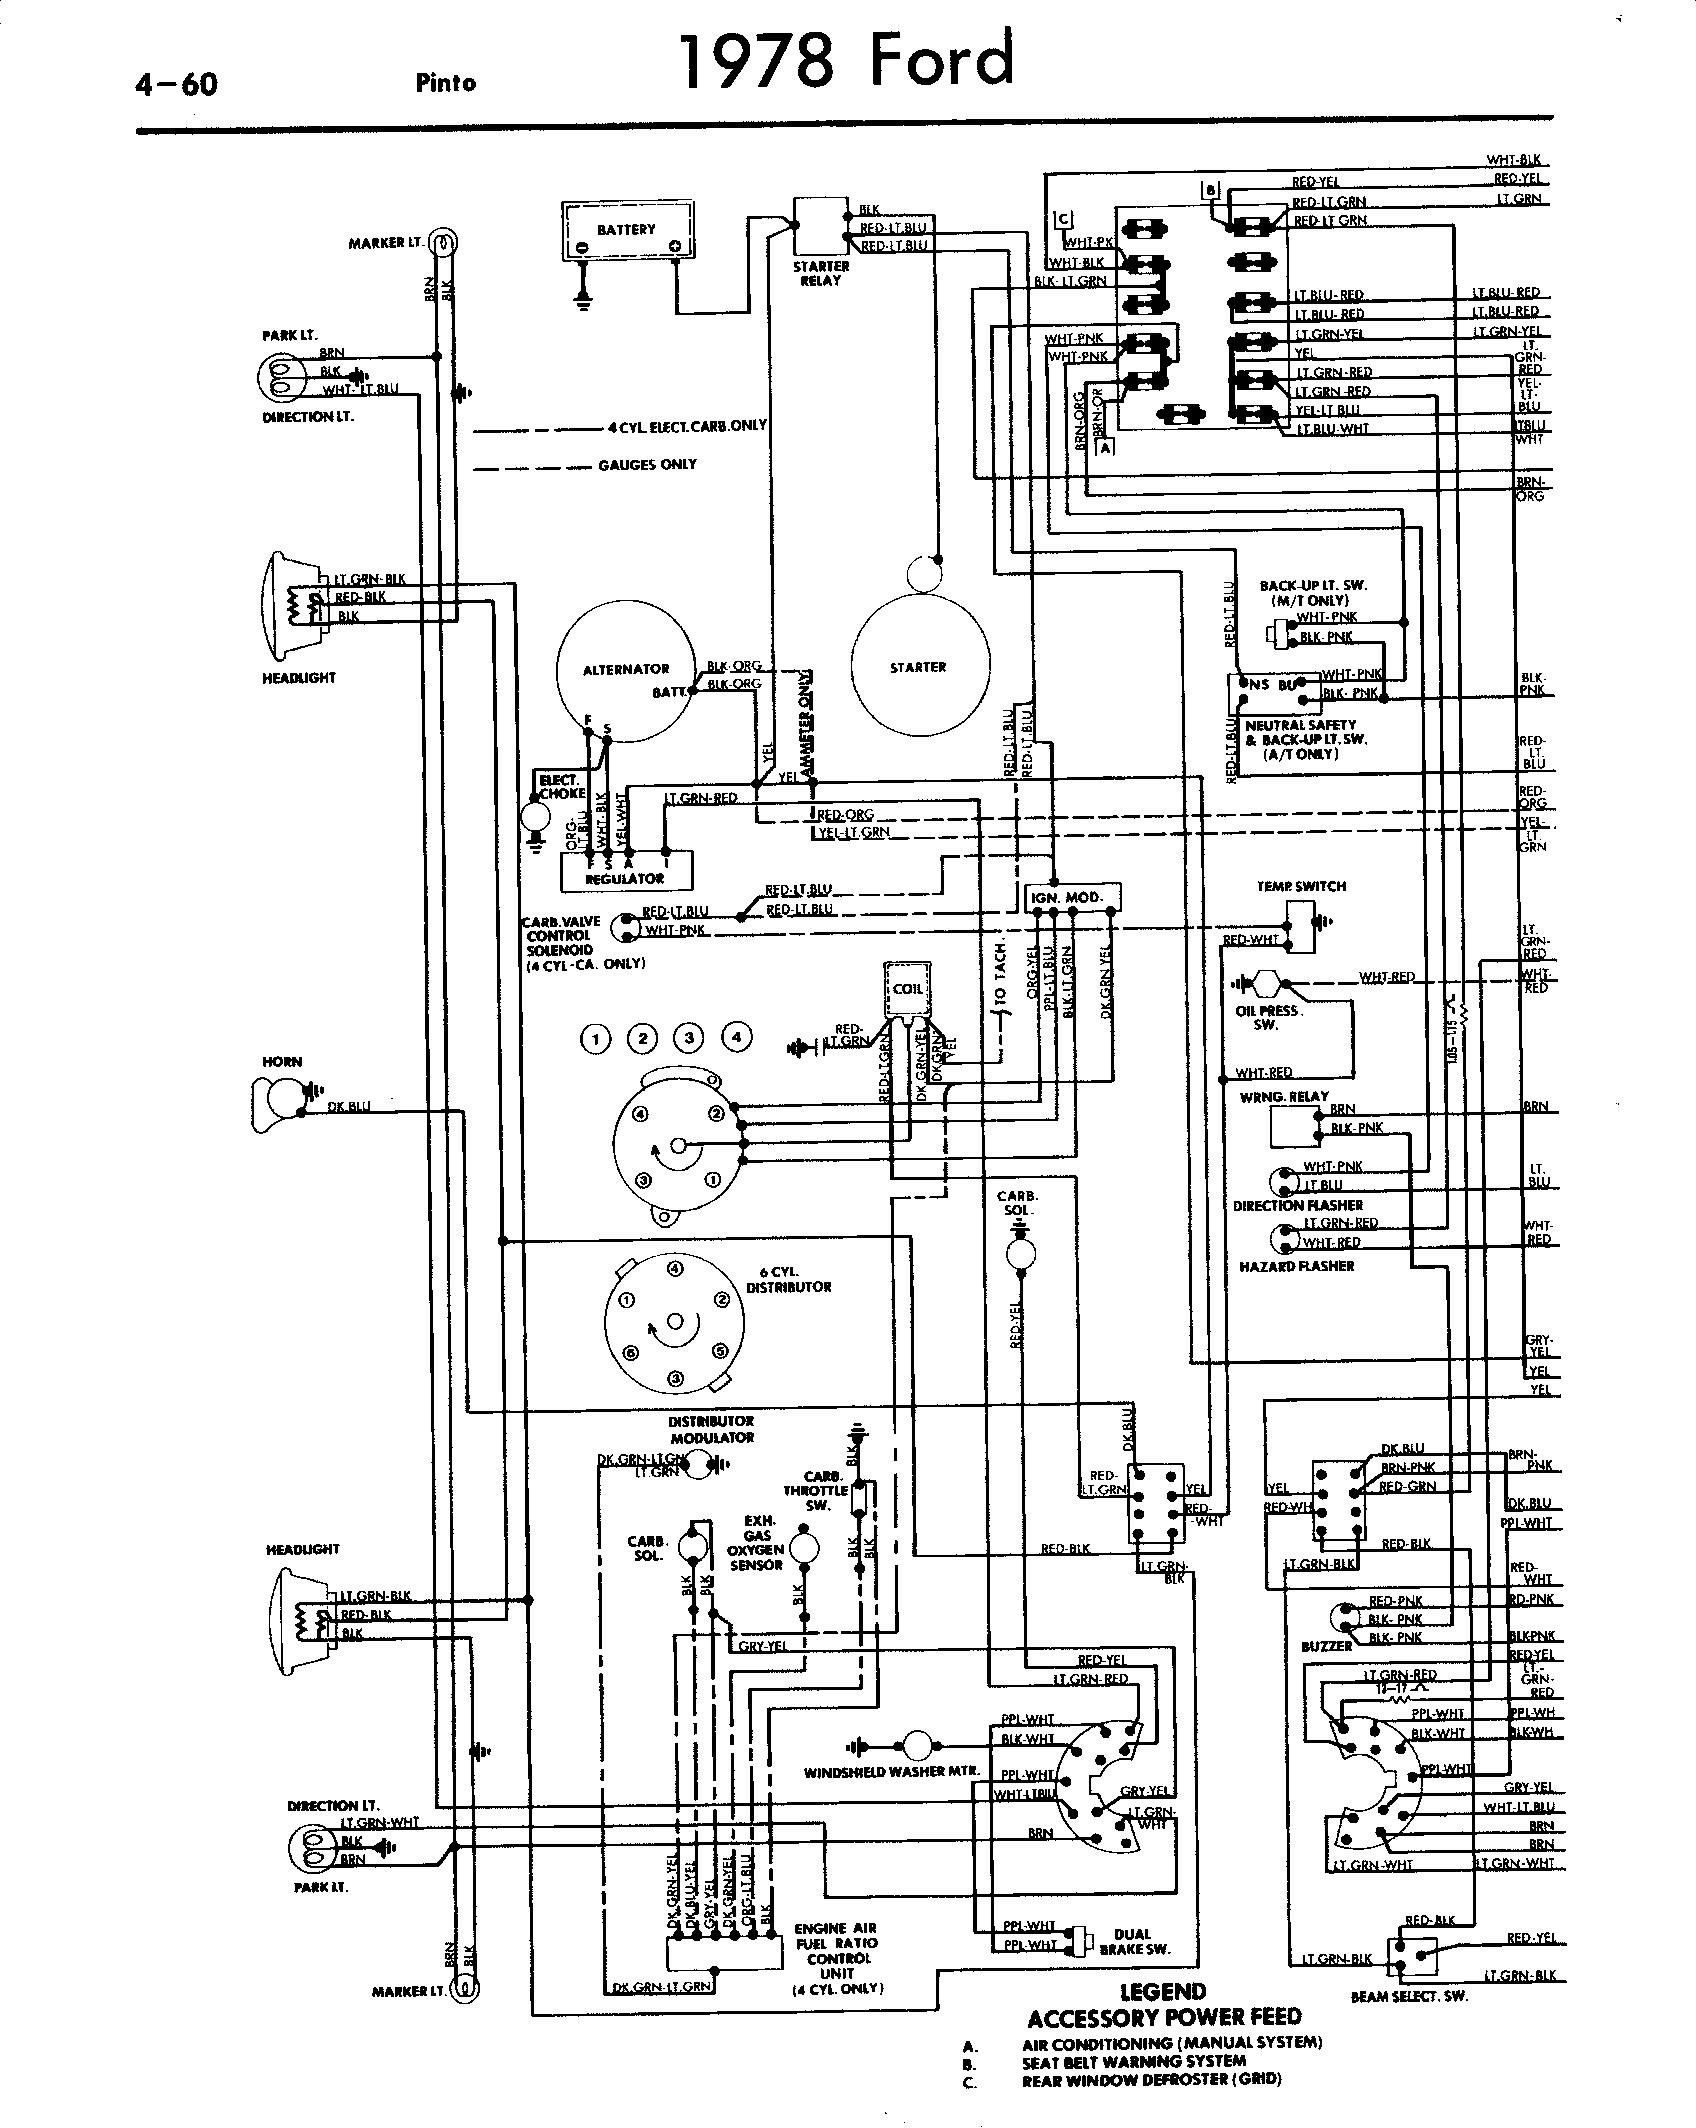 1978 F150 Dash Wiring Diagram 1995 Ford Super Duty Wiring Harness Corollaa Chevyss Genericocialis It